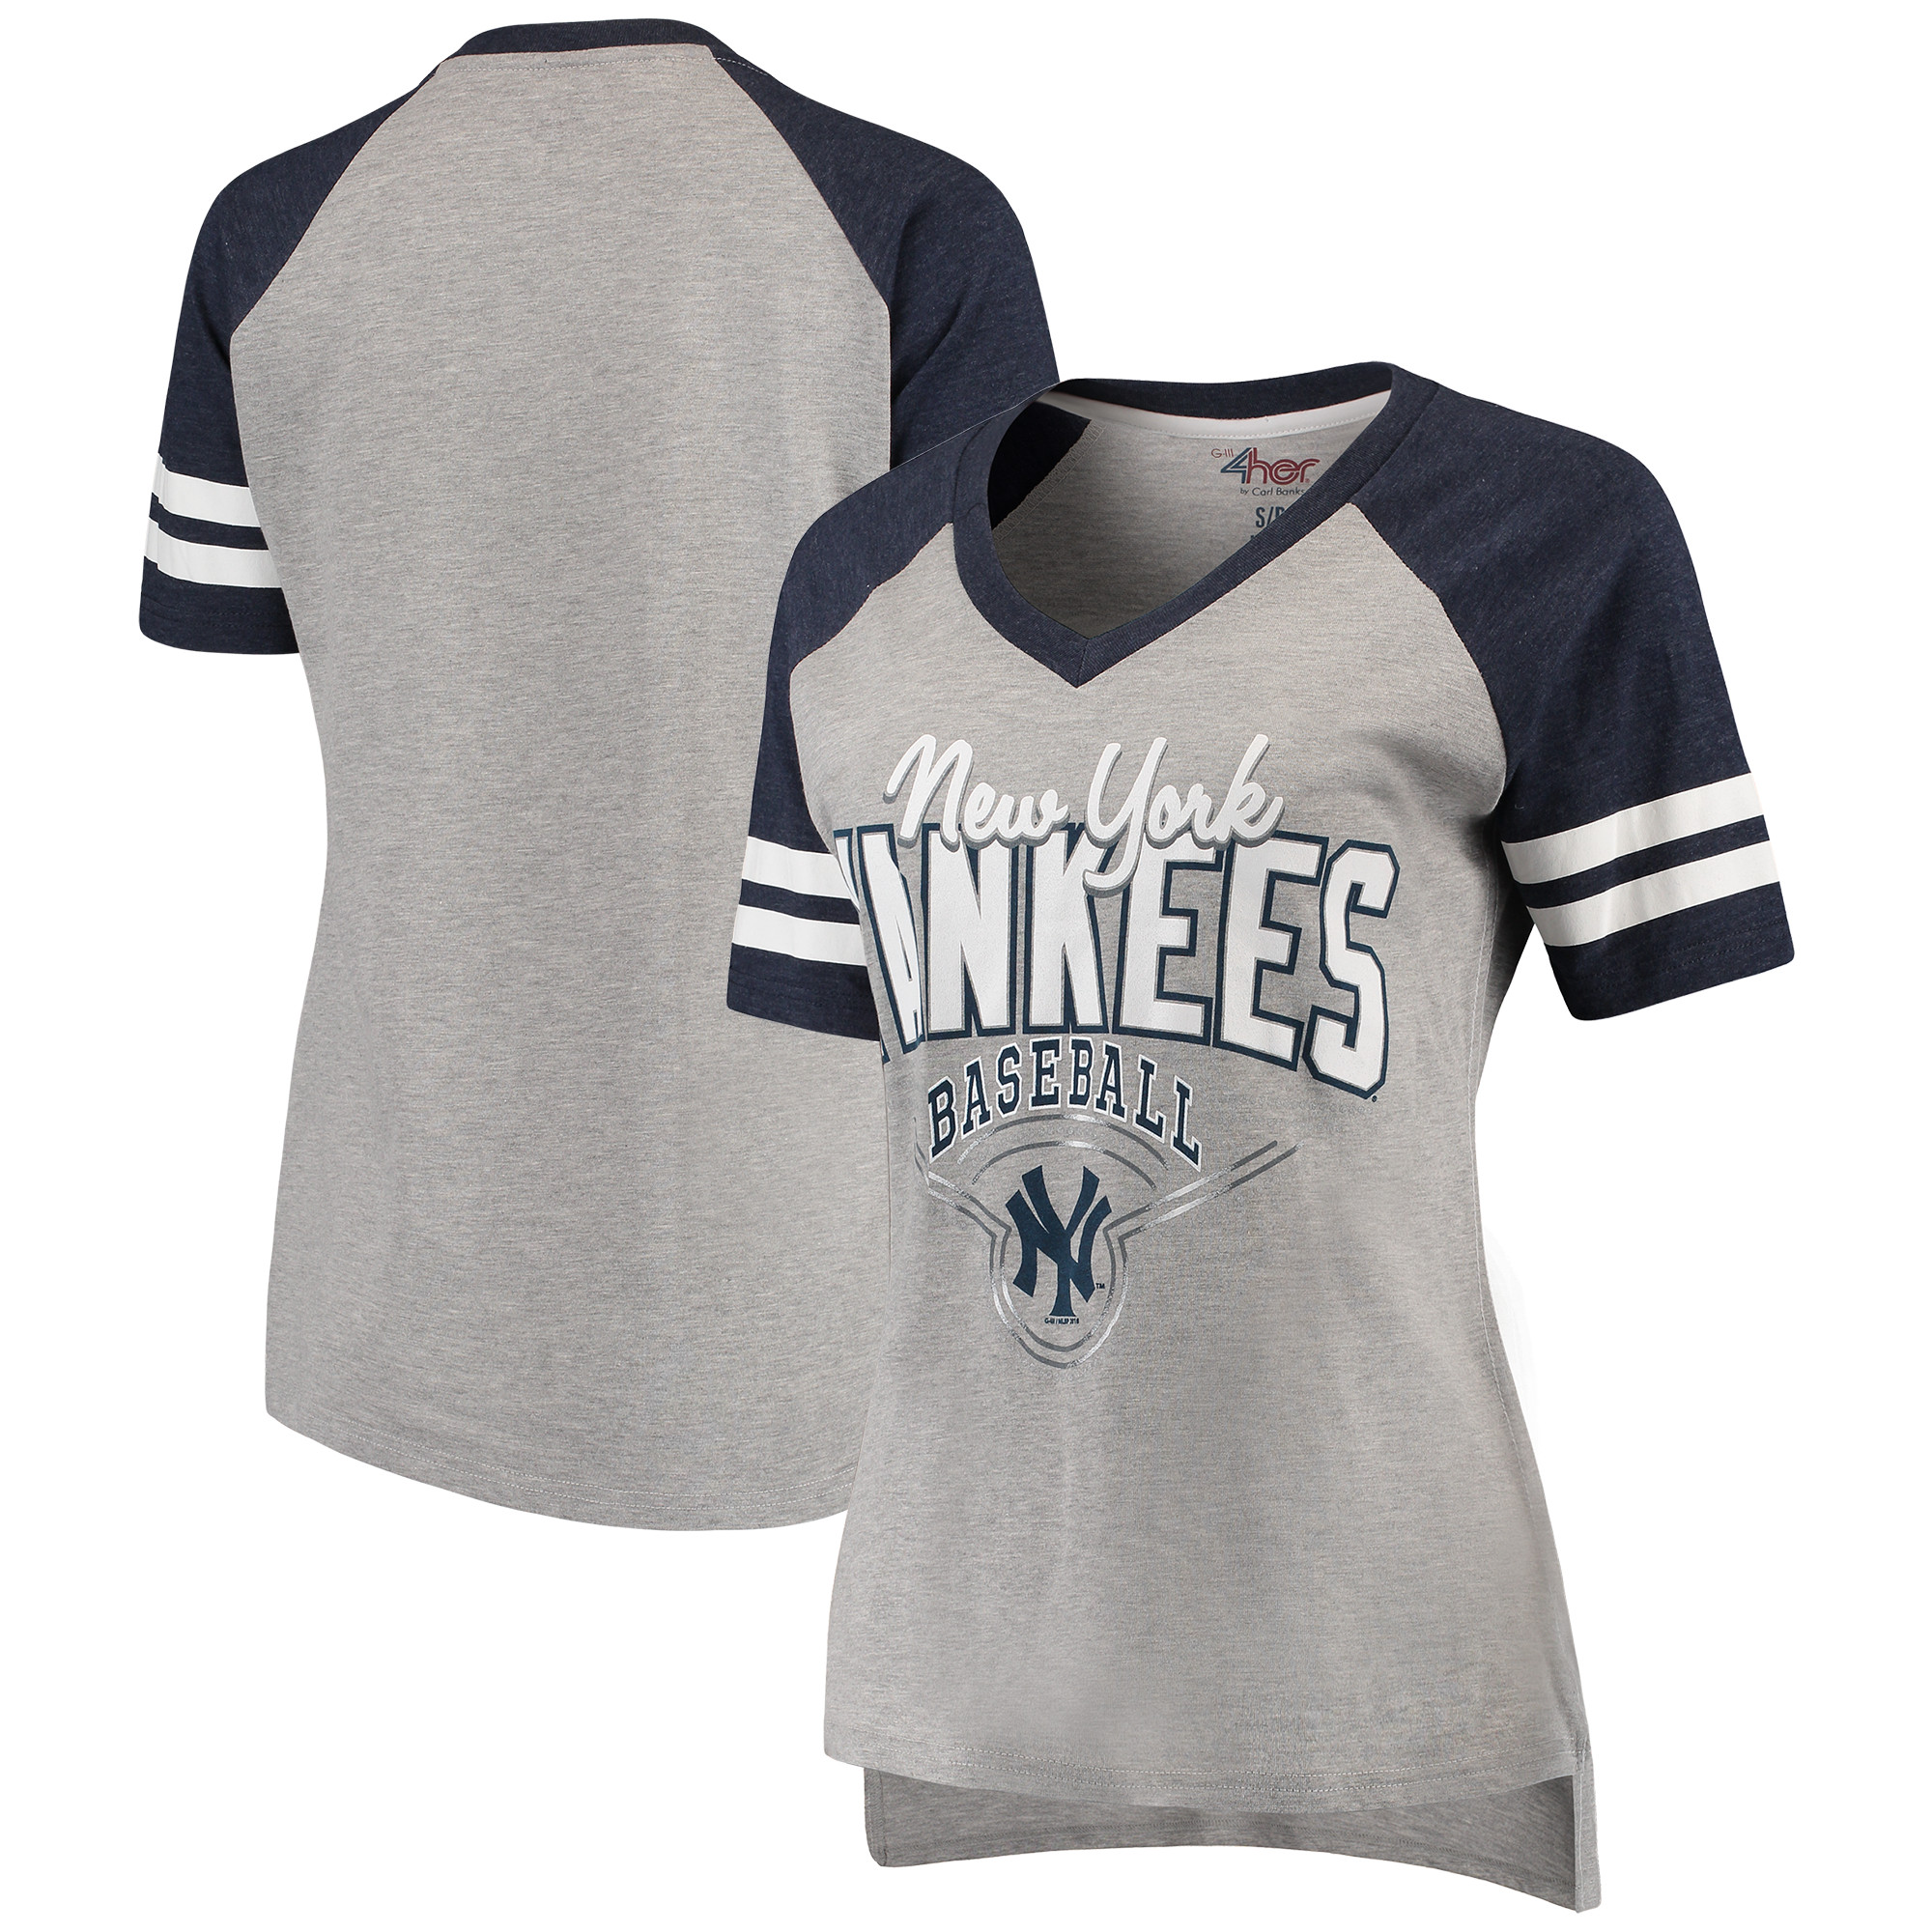 New York Yankees G-III 4Her by Carl Banks Women's Goal Line V-Neck T-Shirt - Heathered Gray/Navy